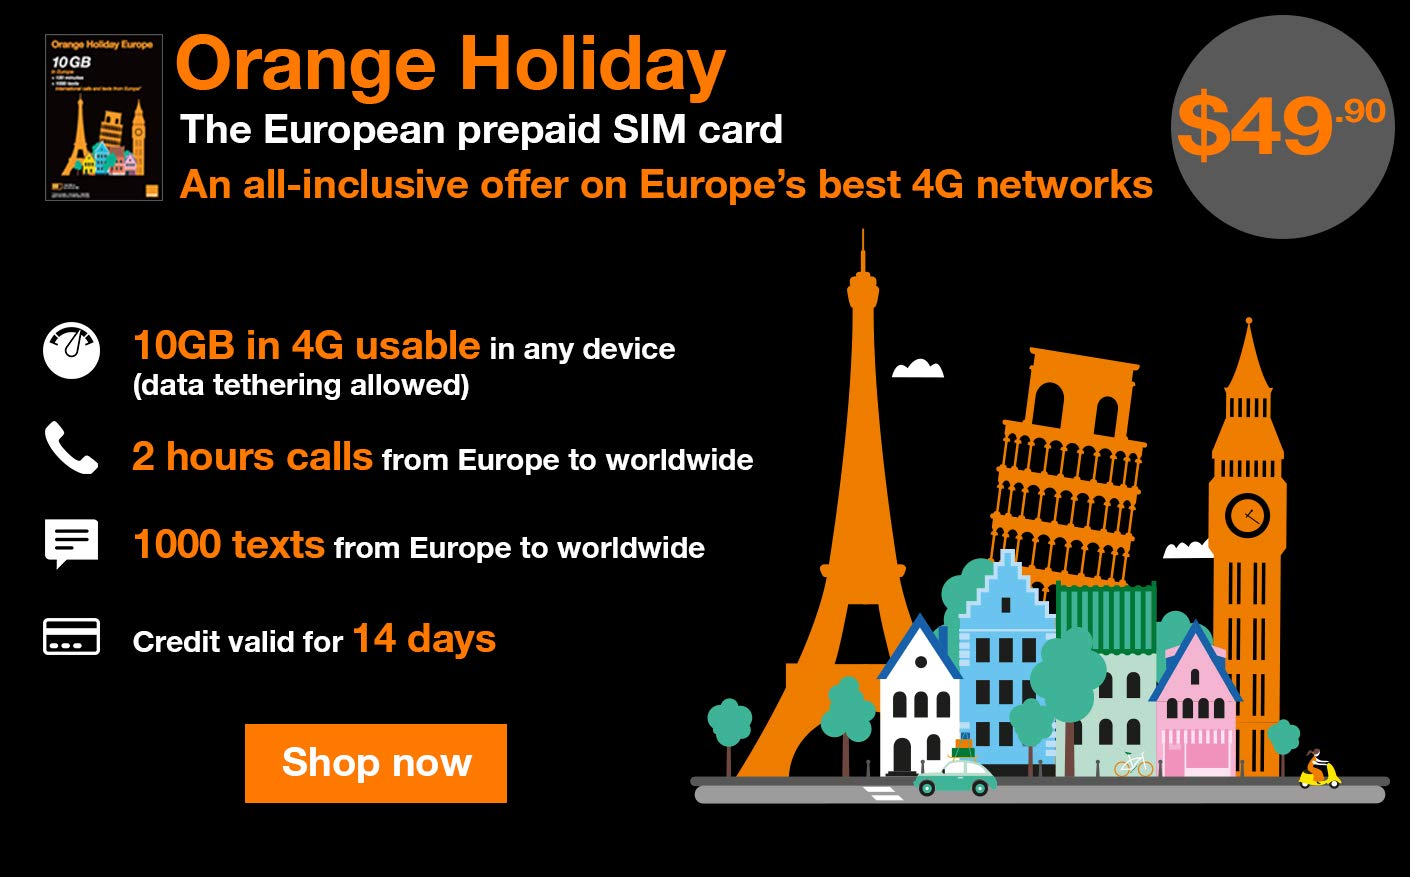 amazoncom orange holiday europe prepaid sim card 10gb internet data in 4glte data tethering allowed 120 mn 1000 texts in 30 countries in - Prepaid Sim Card Europe Data